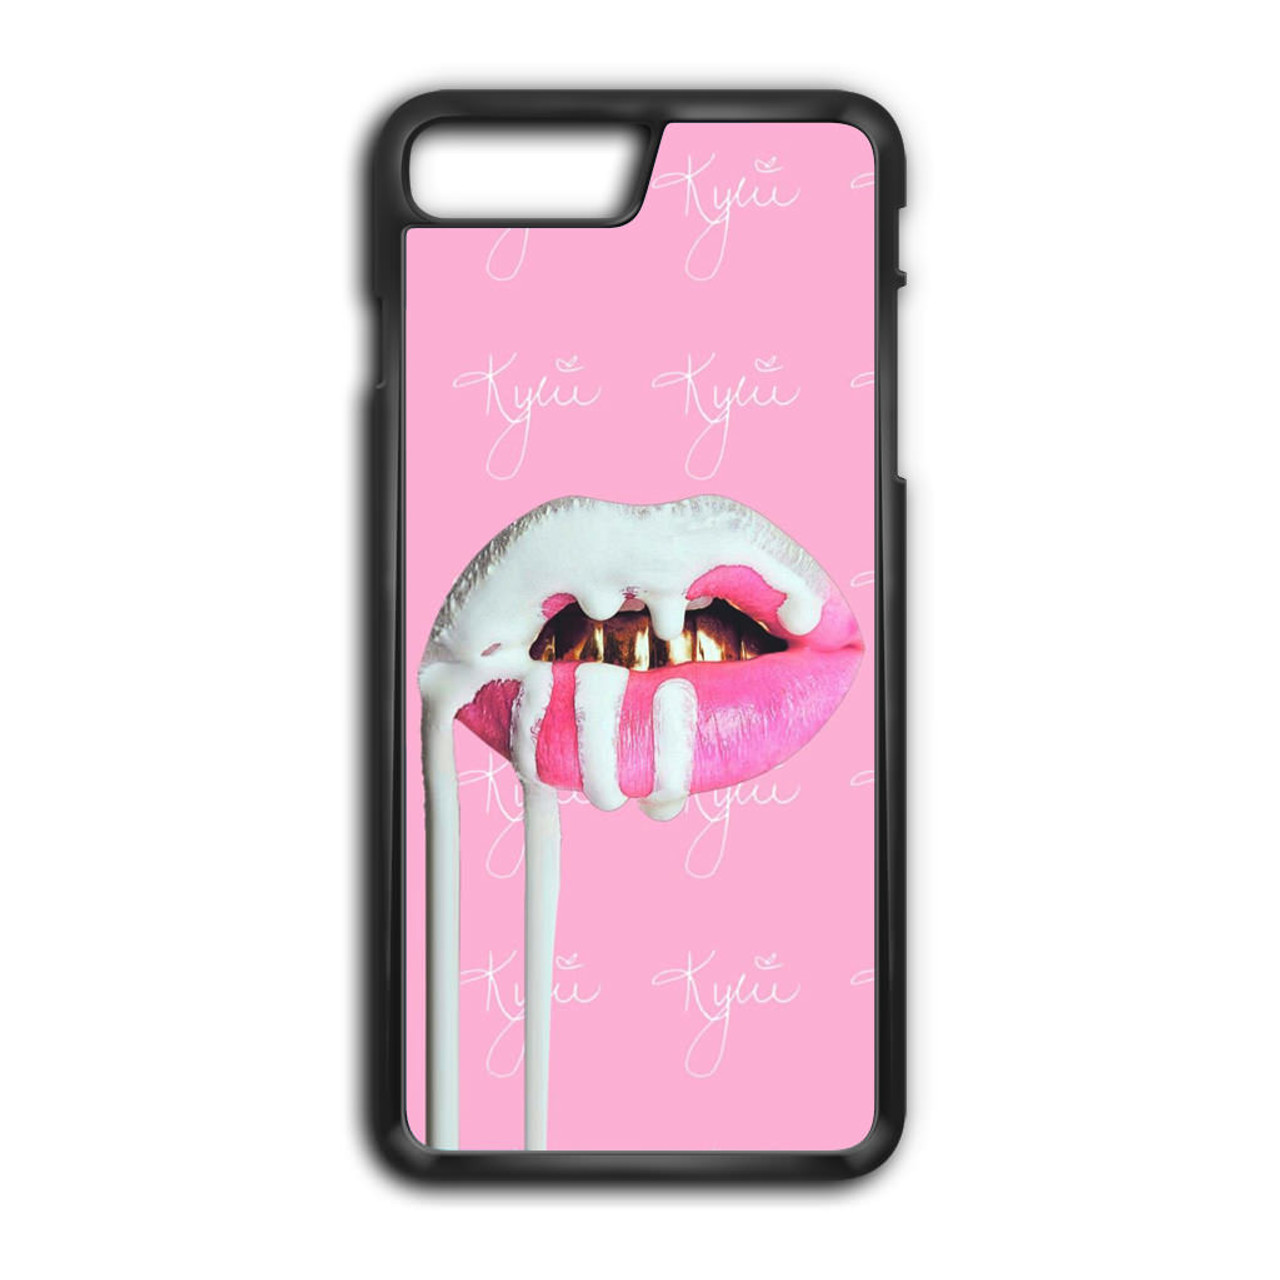 iphone 8 plus kylie jenner case